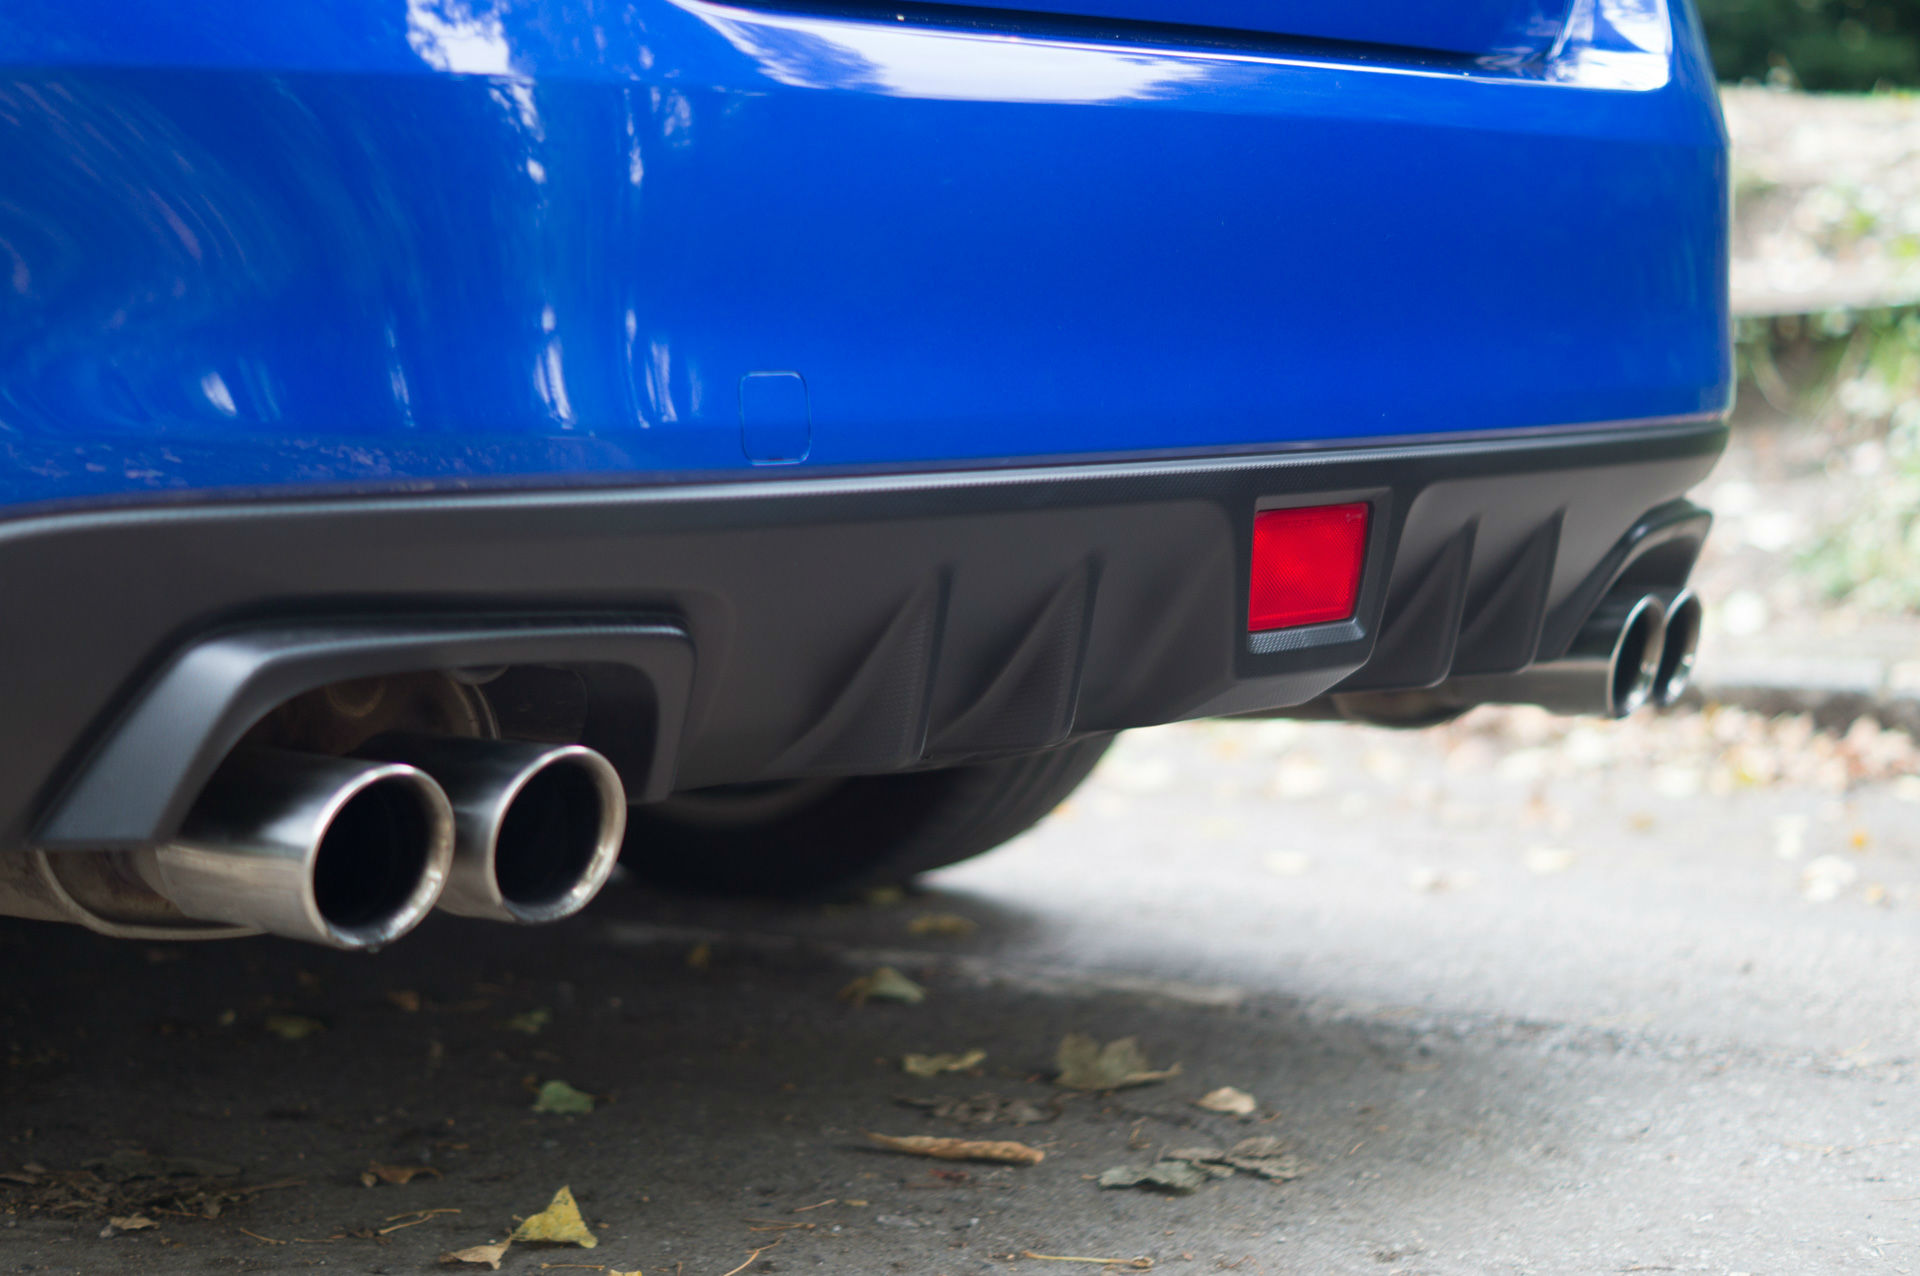 Subaru Wrx Sti Review Rear Diffuser Carwitter on Subaru Boxer Cylinder Head